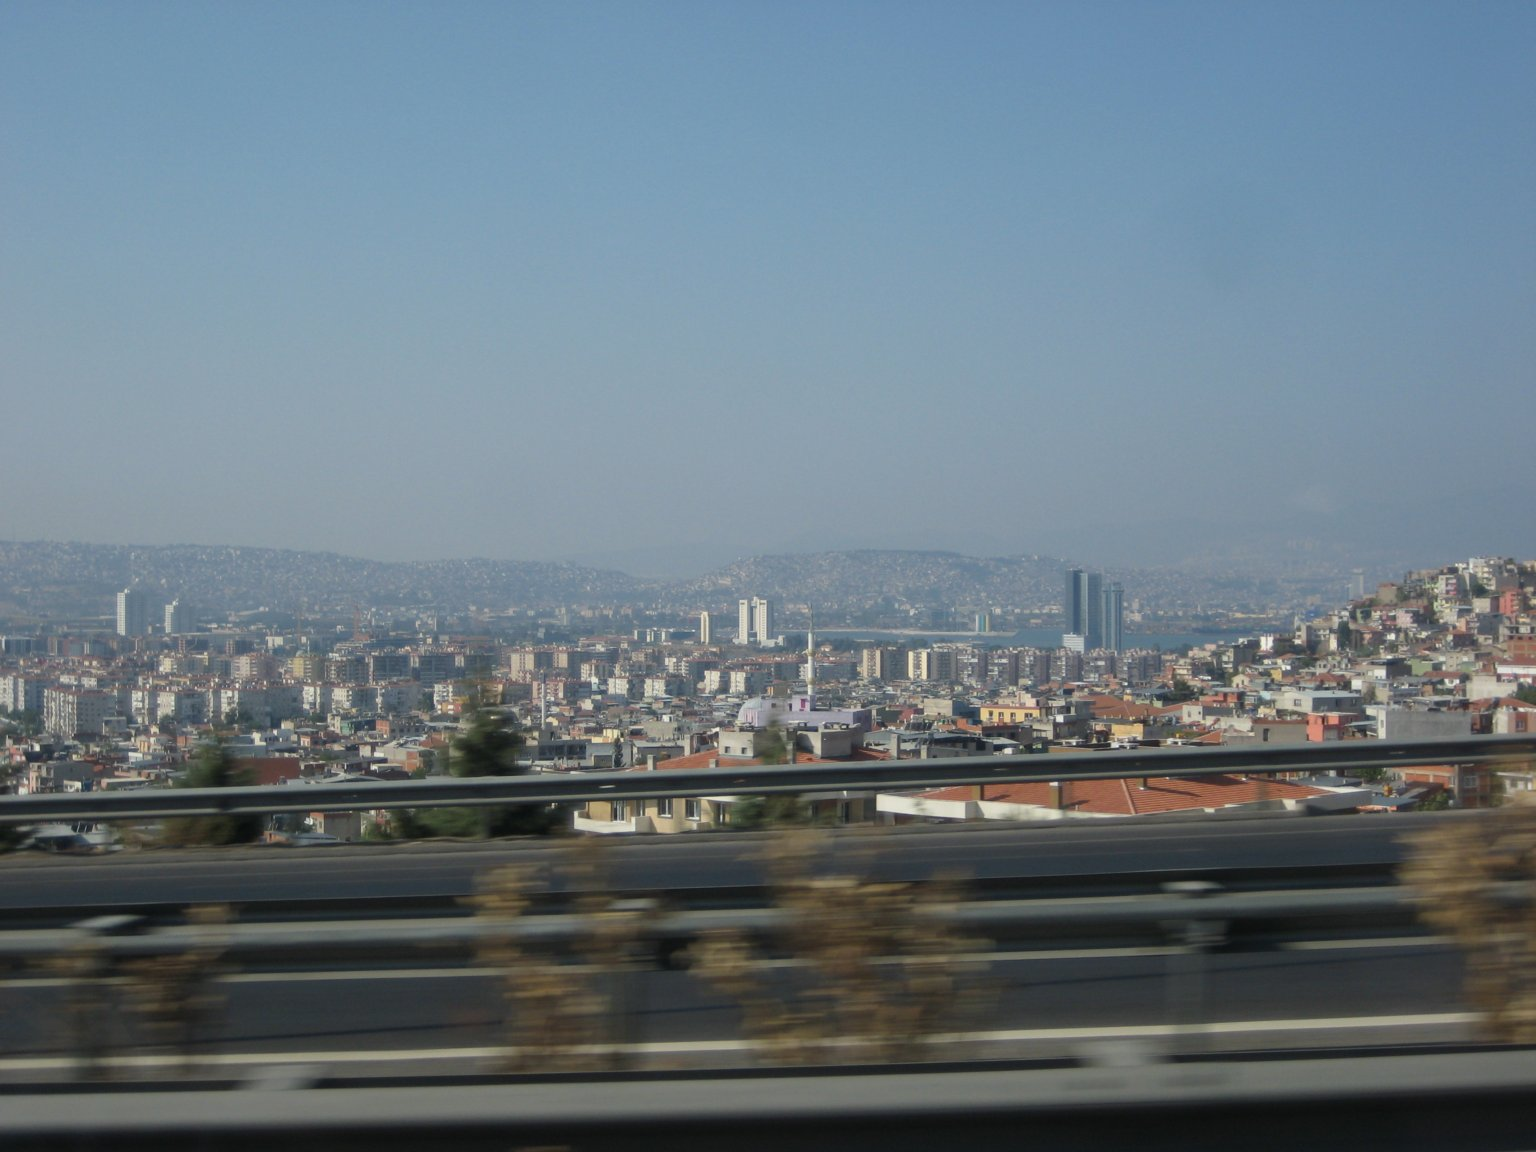 way back into the buzzling city if Izmir